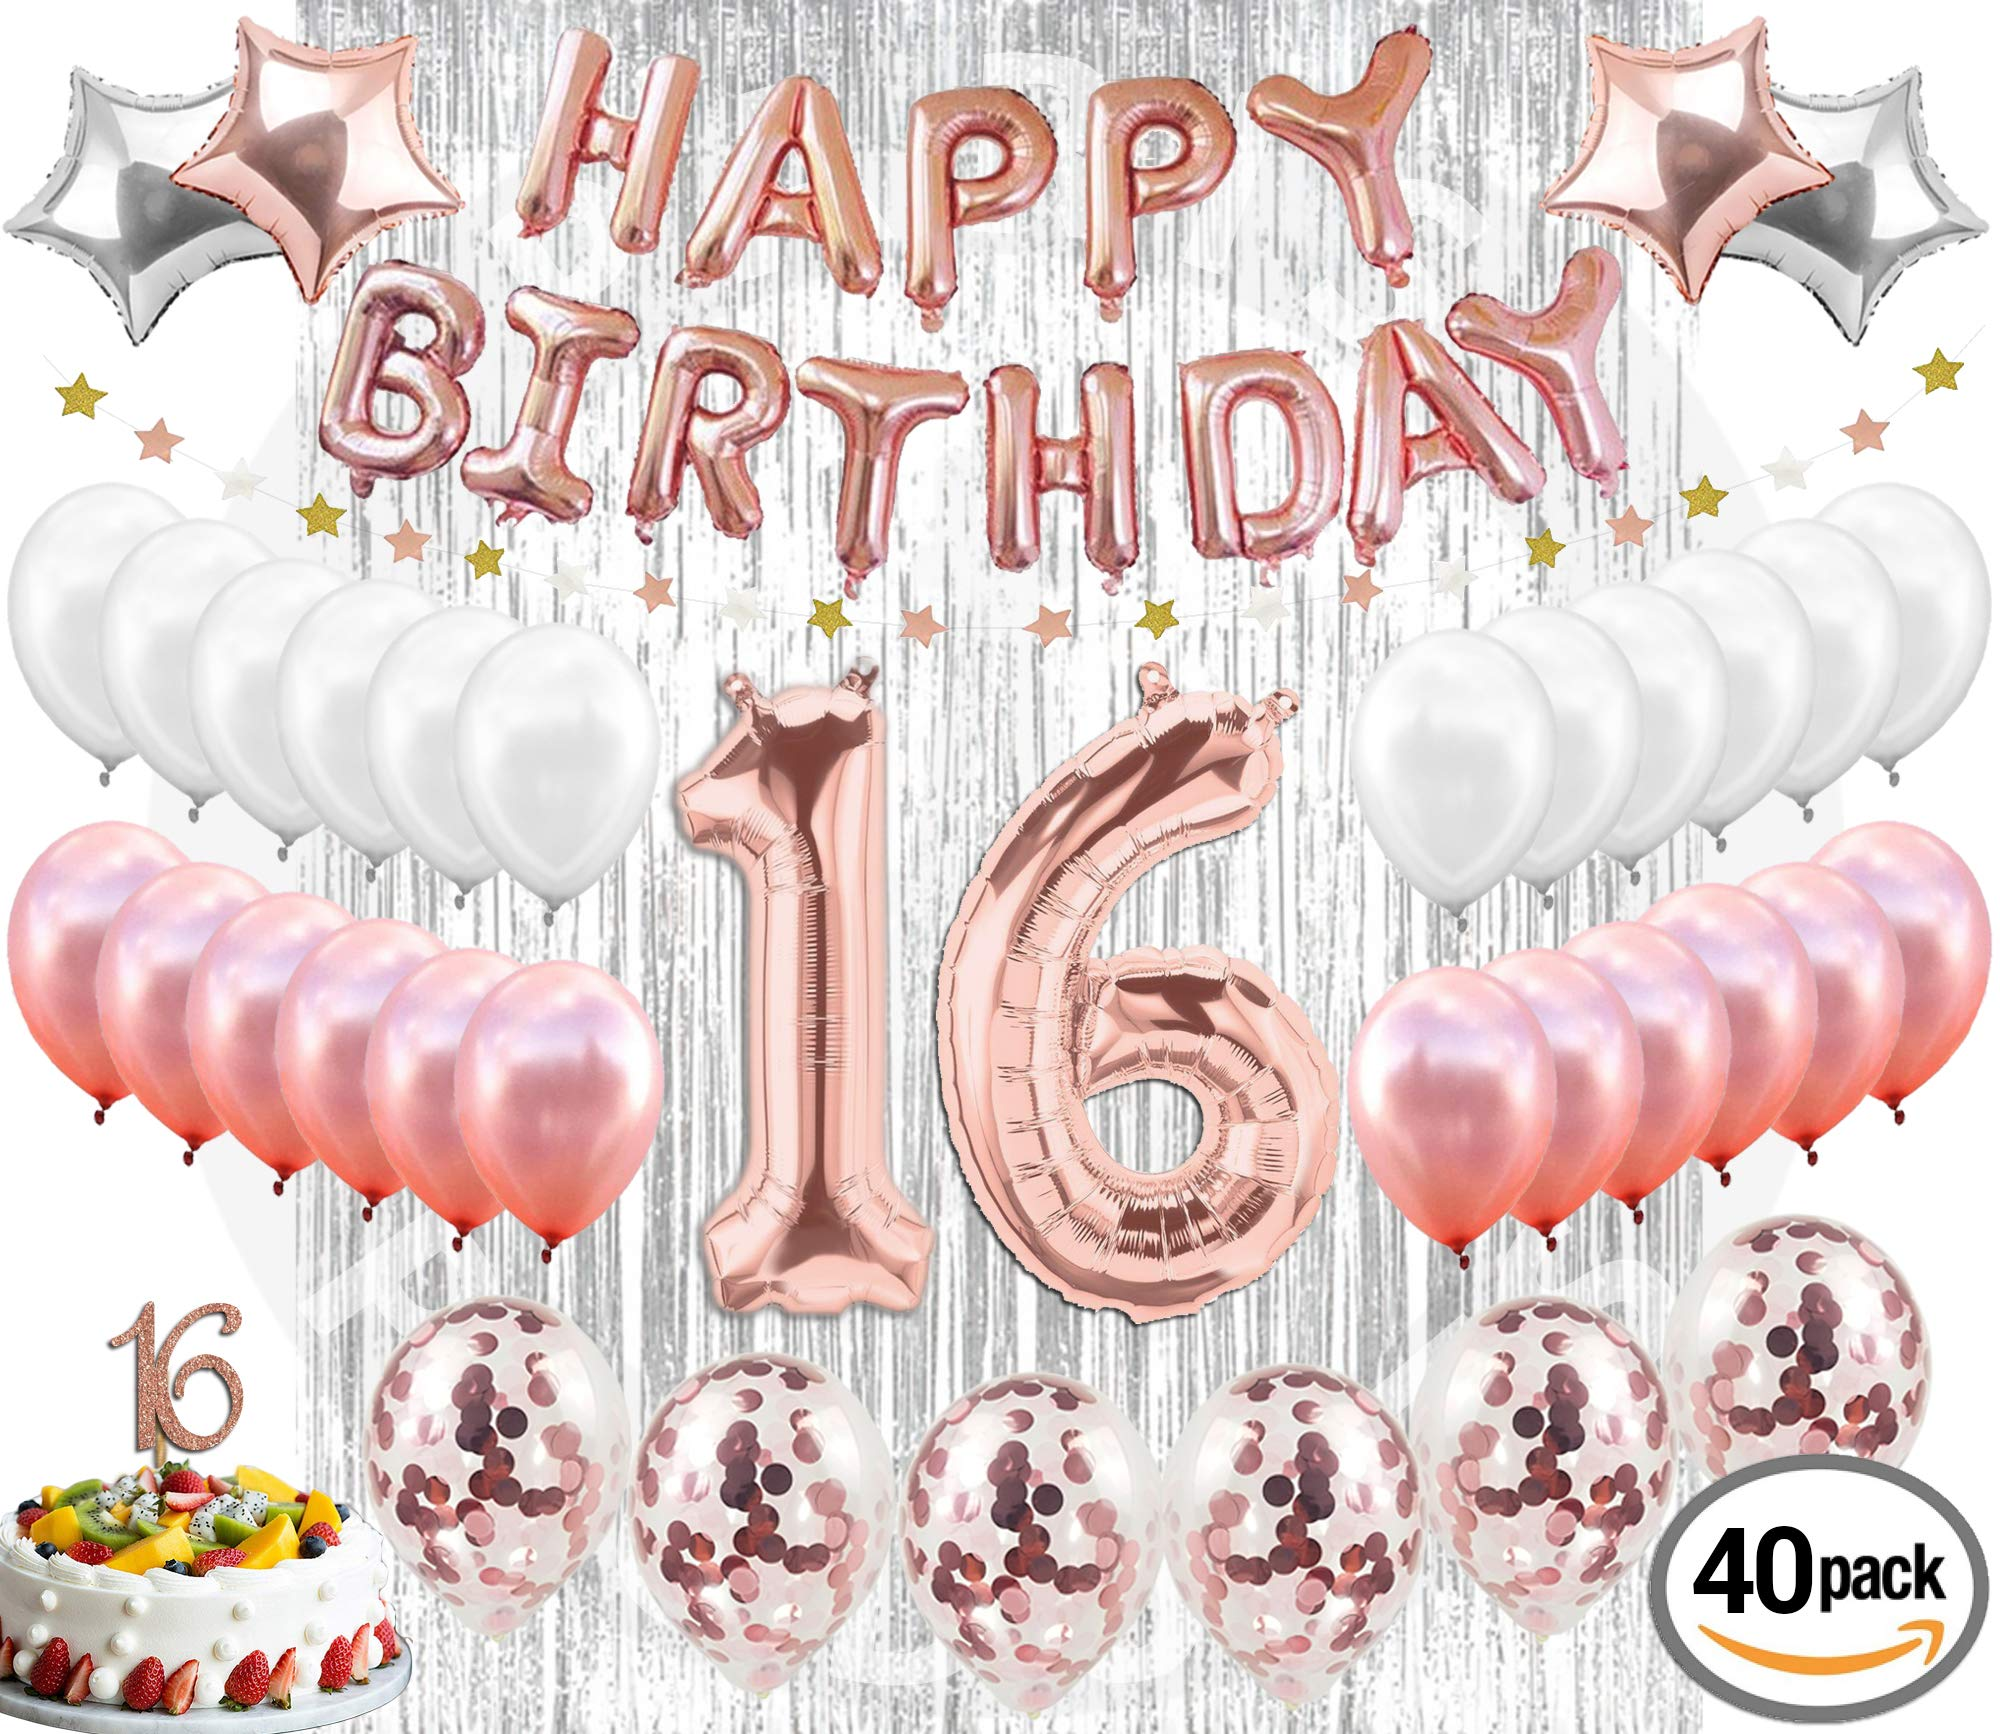 16th Birthday Decorations Party Supplies Sweet 16 Birthday Balloons  Rose Gold Confetti Balloons 16 Cake Topper Rose Gold  Metallic Silver Curtain for Photo Booth and Props  Sweet Sixteen Decorations